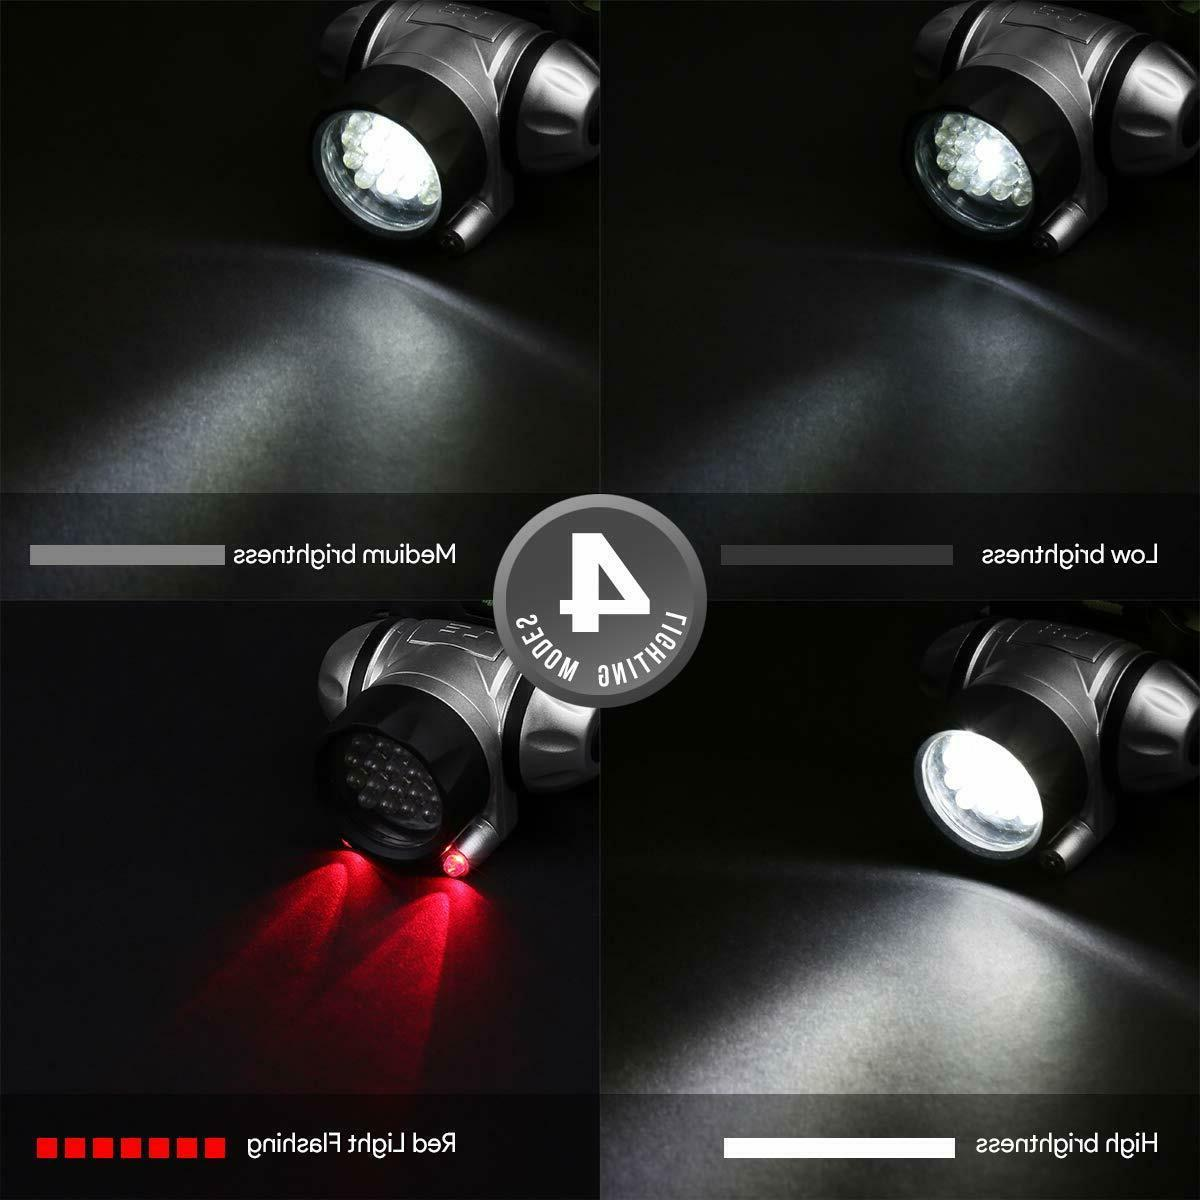 LED Water Head Light for Reading & Use